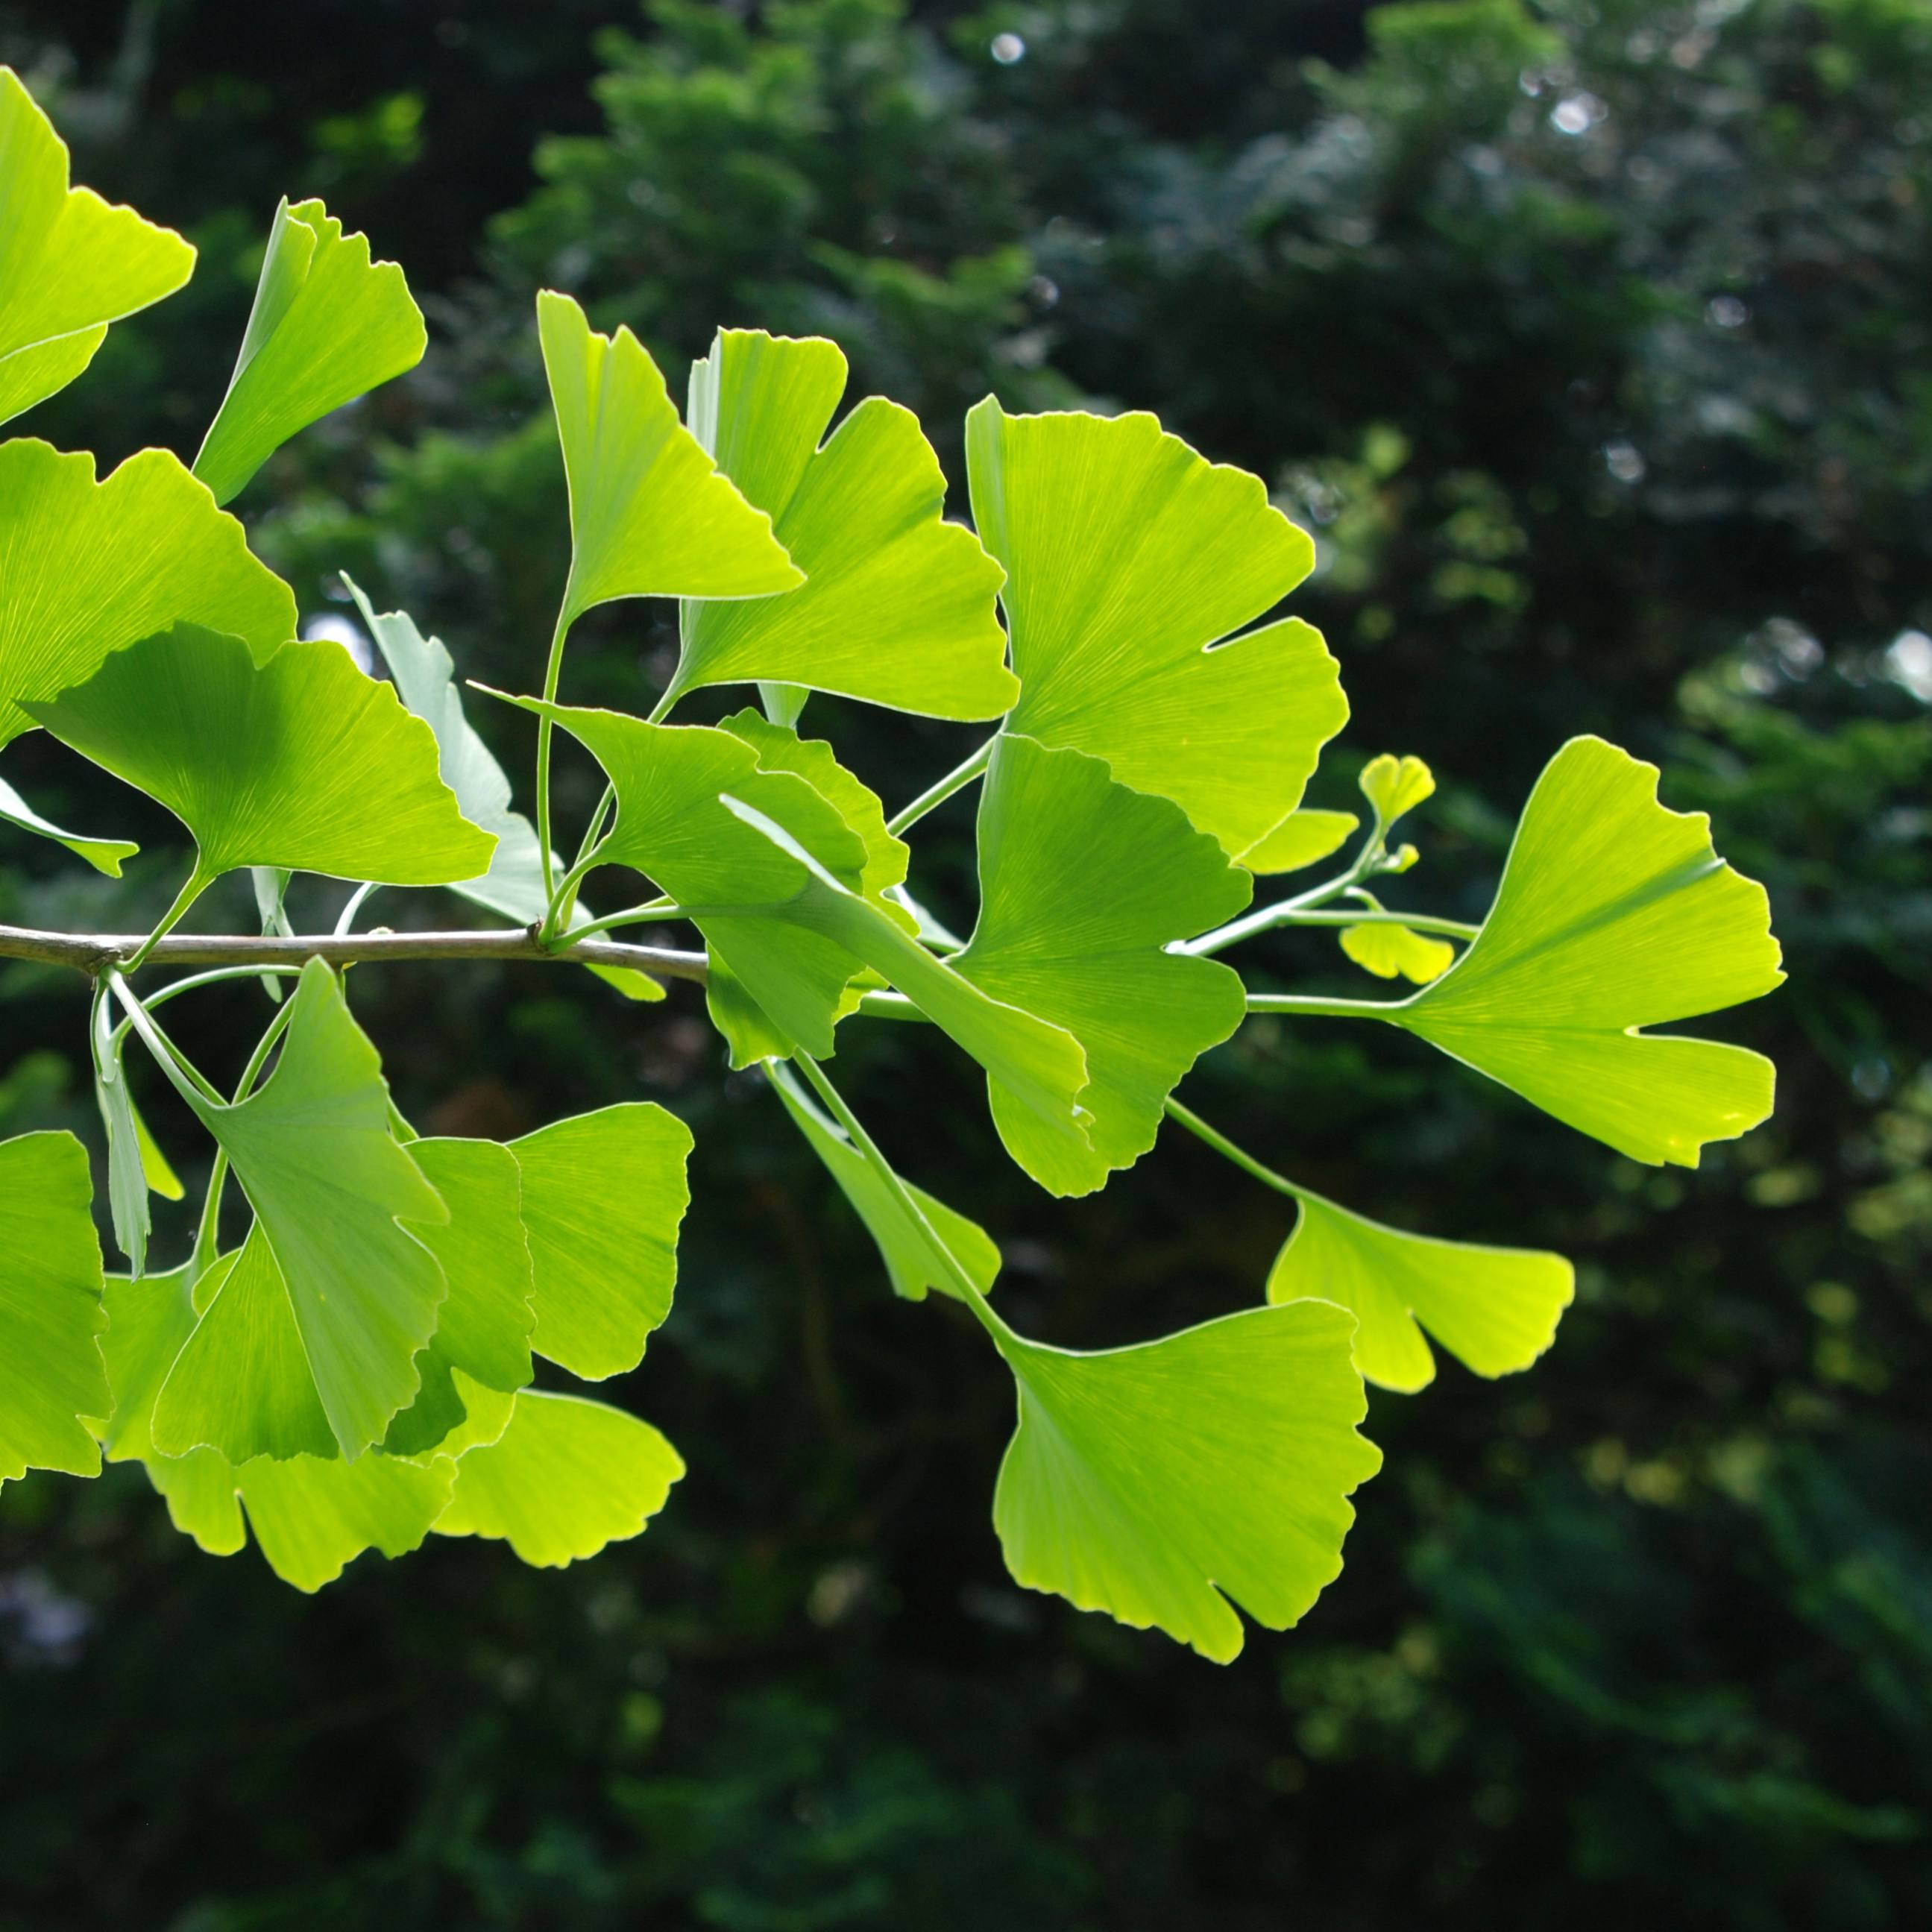 a branch of a ginkgo tree with bright green leaves in the sunlight